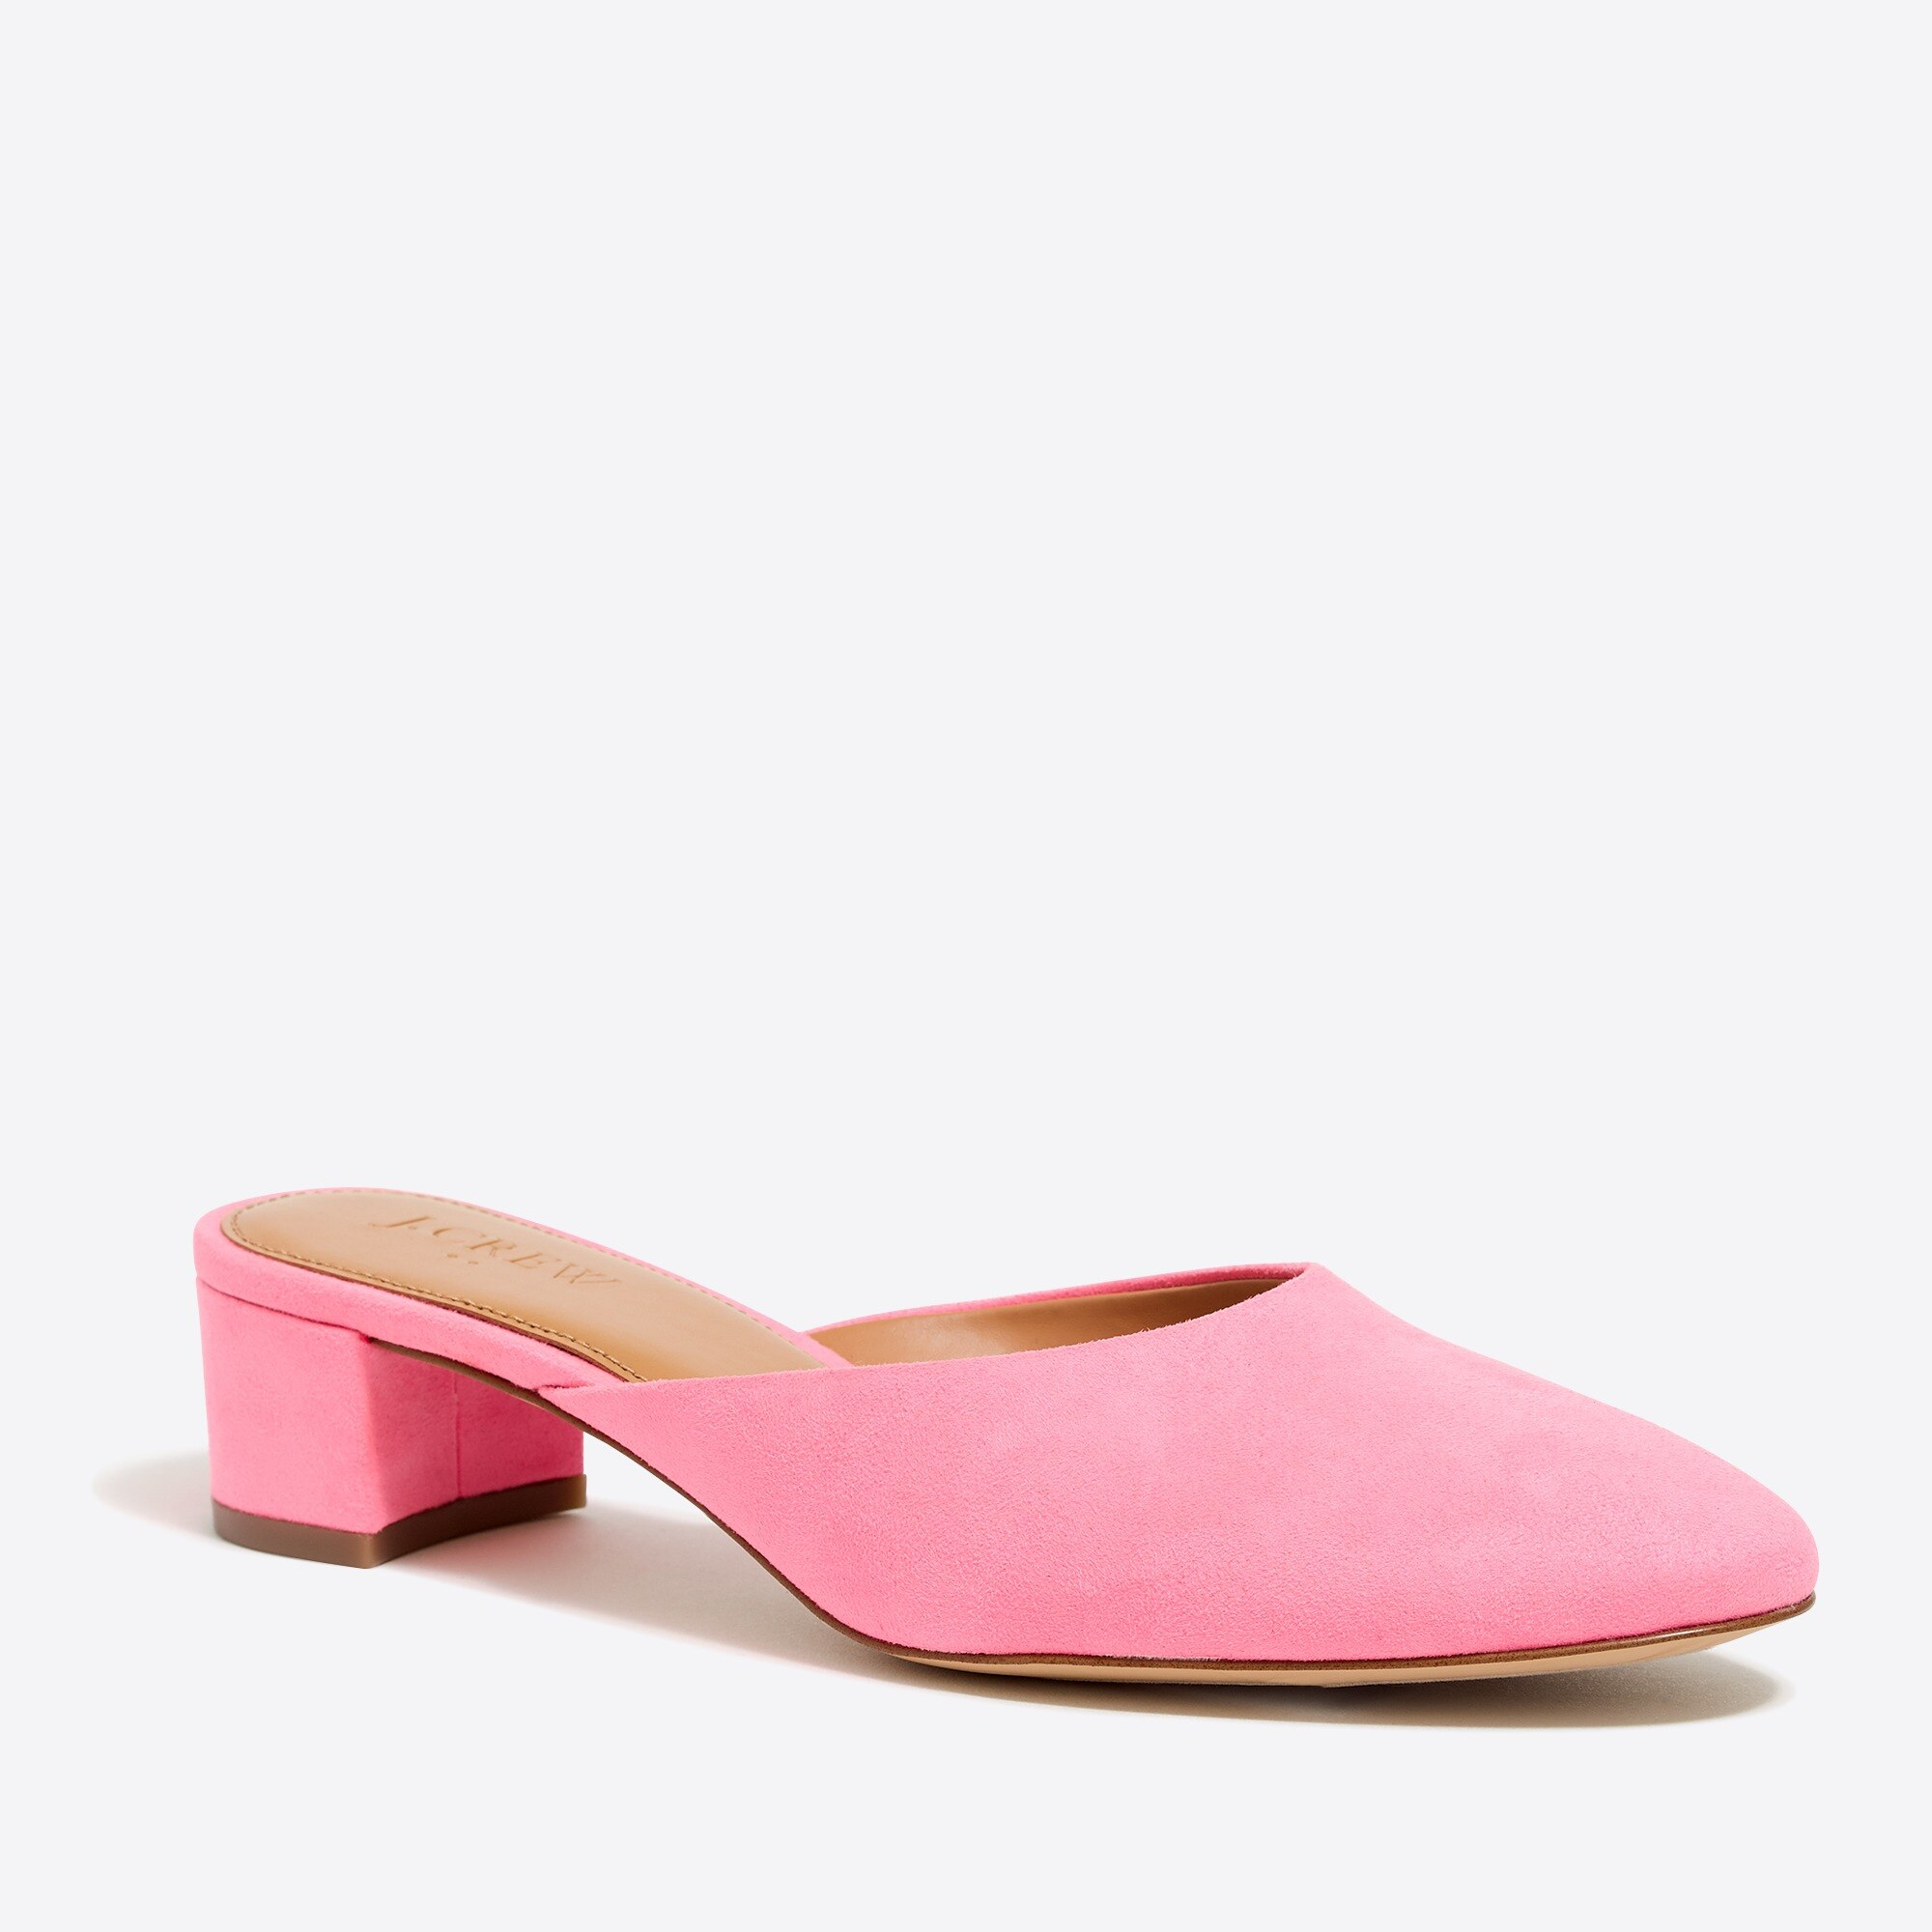 Suede block heel mules factorywomen shoes c